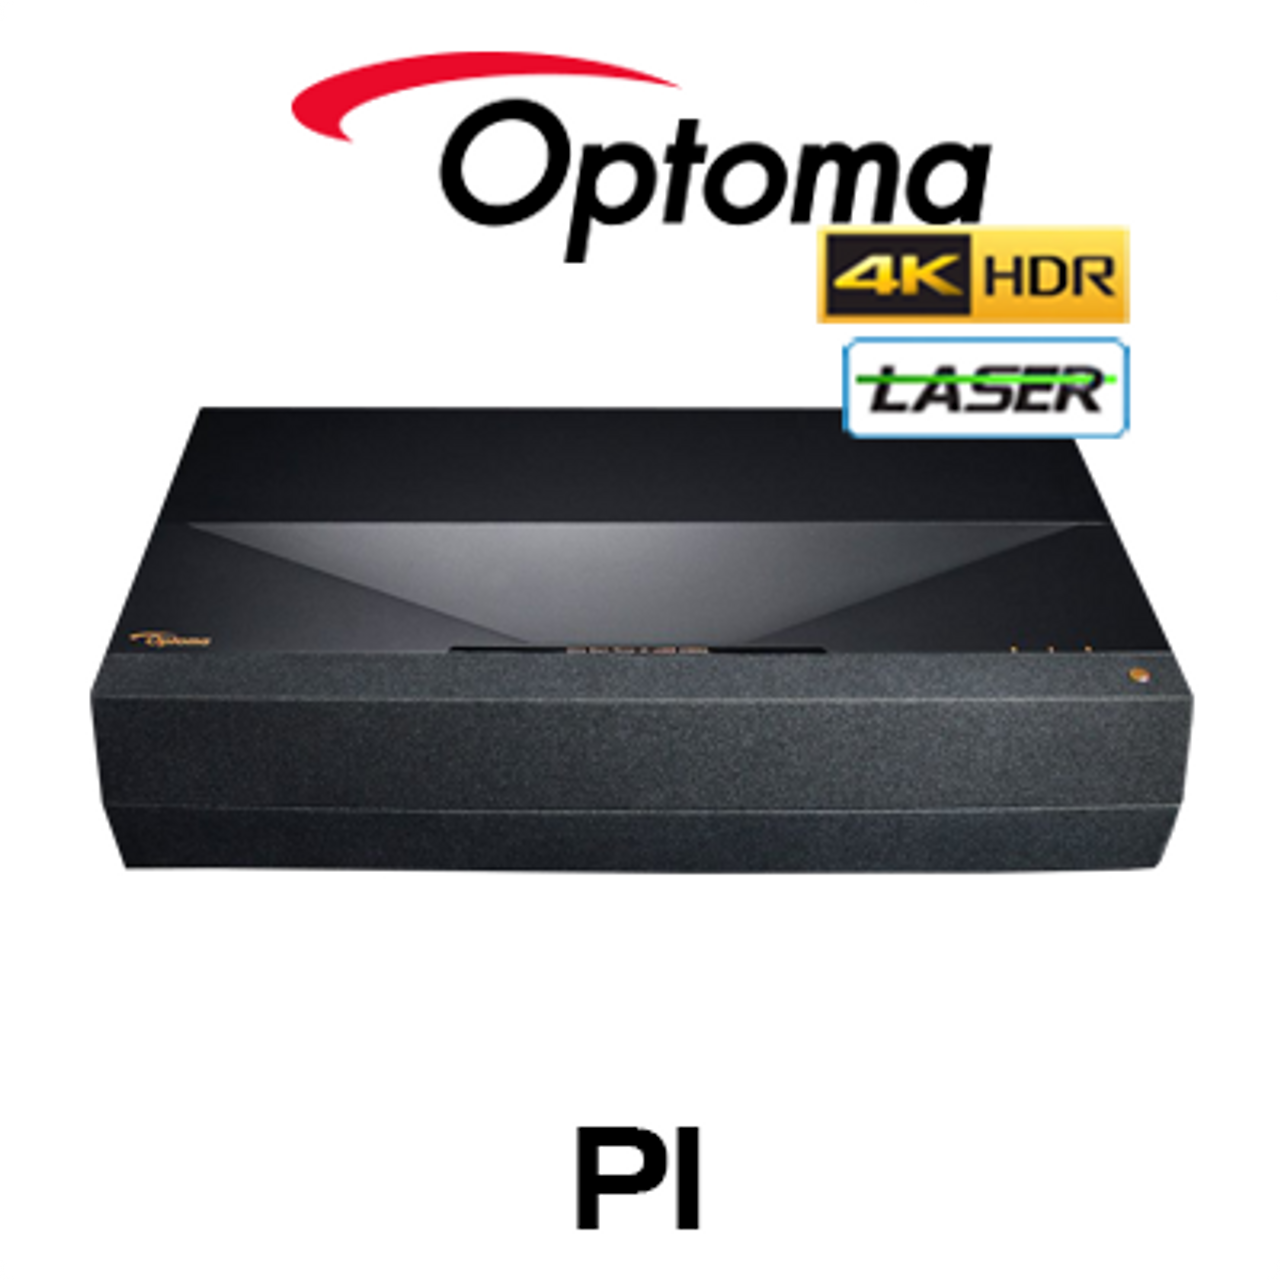 Optoma P1 4K UHD HDR10 Smart Home Laser Ultra Short Throw Projector